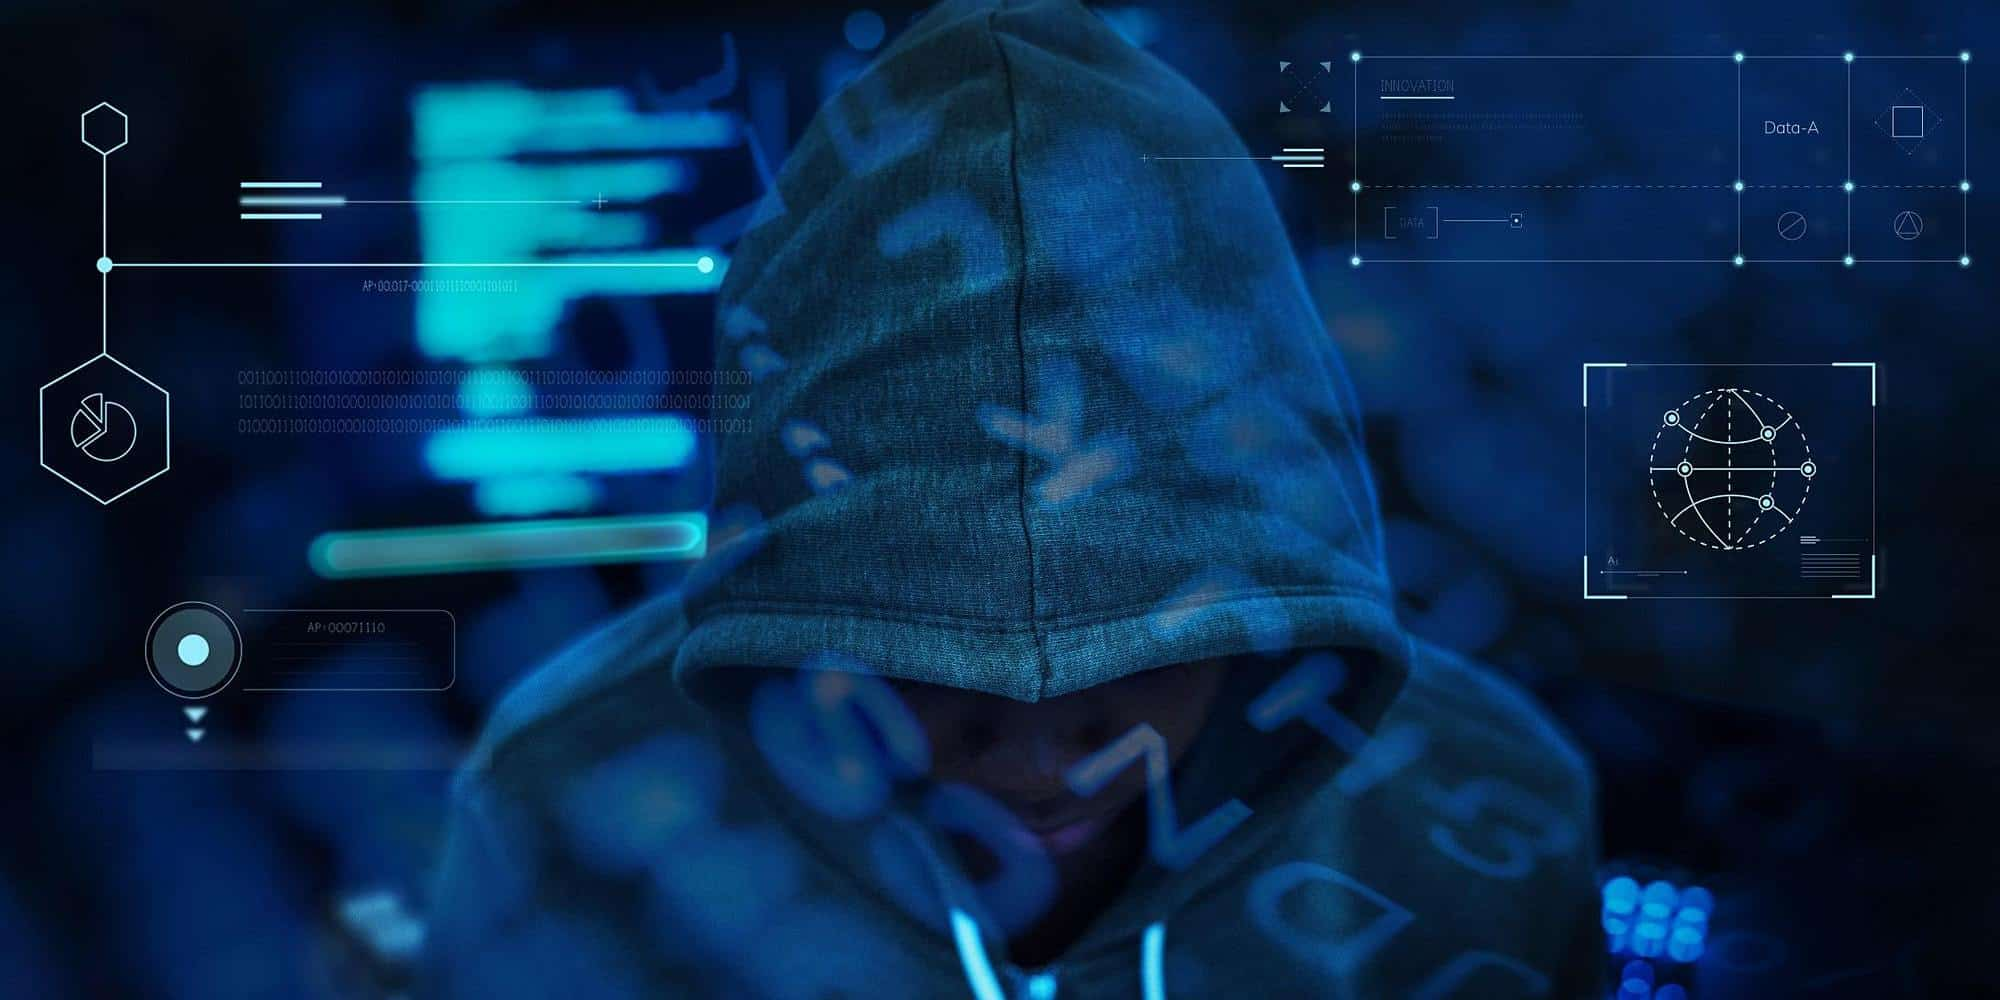 Image of the back of a person wearing a hoodie sweatshirt and computer graphics